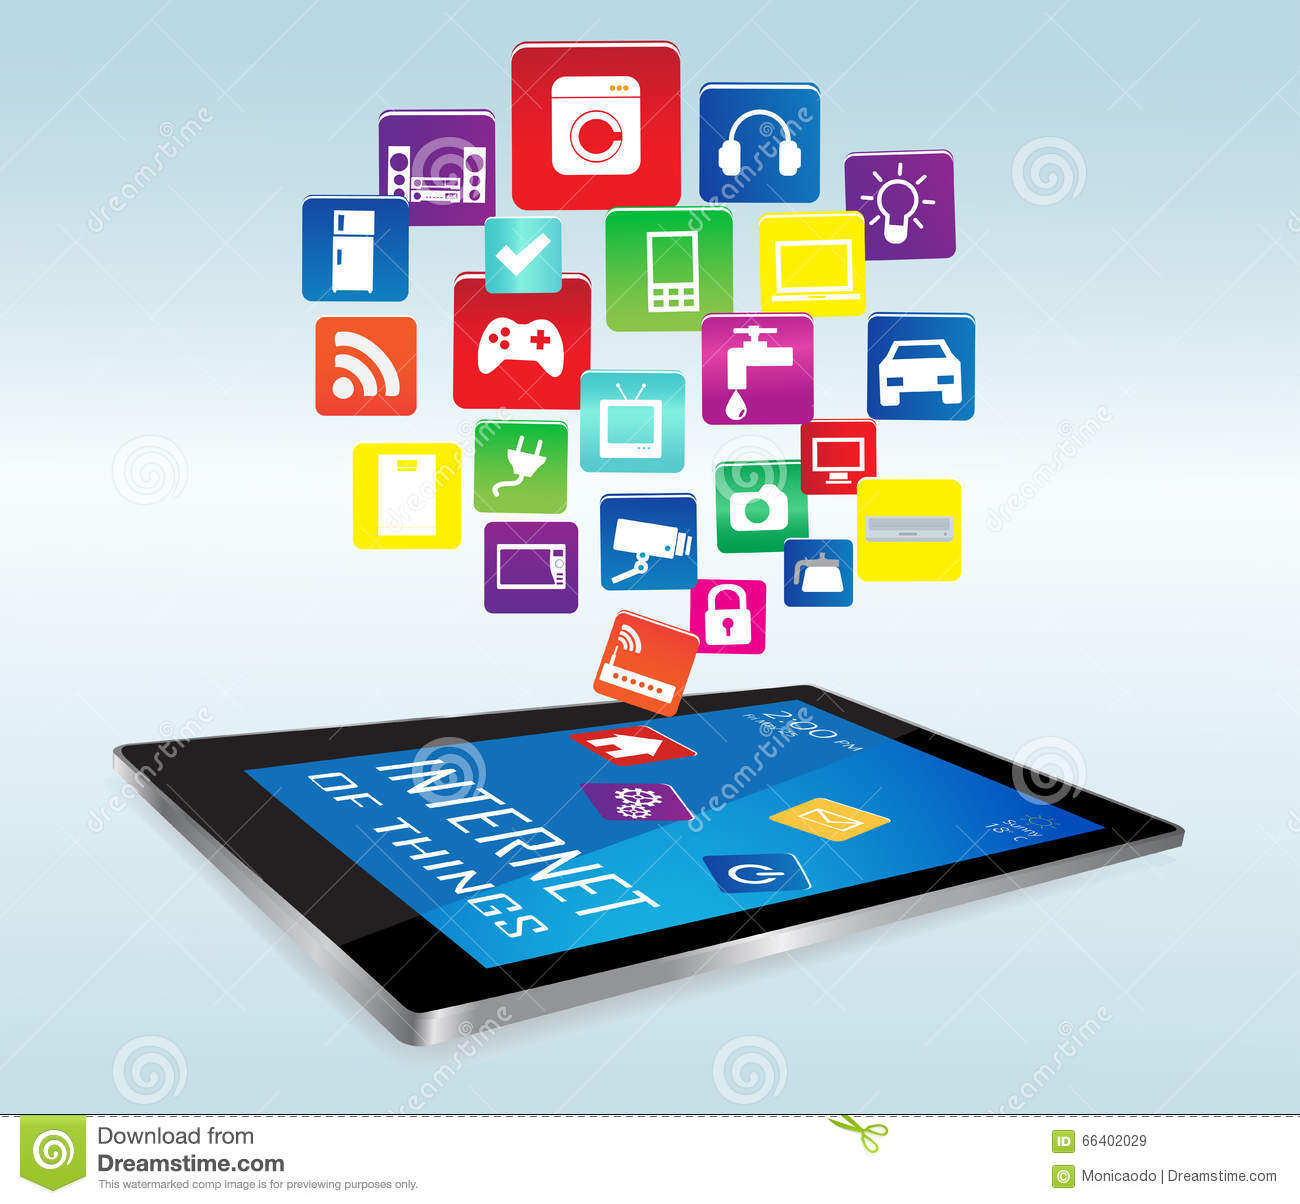 Tablet PC and Internet of things Apps